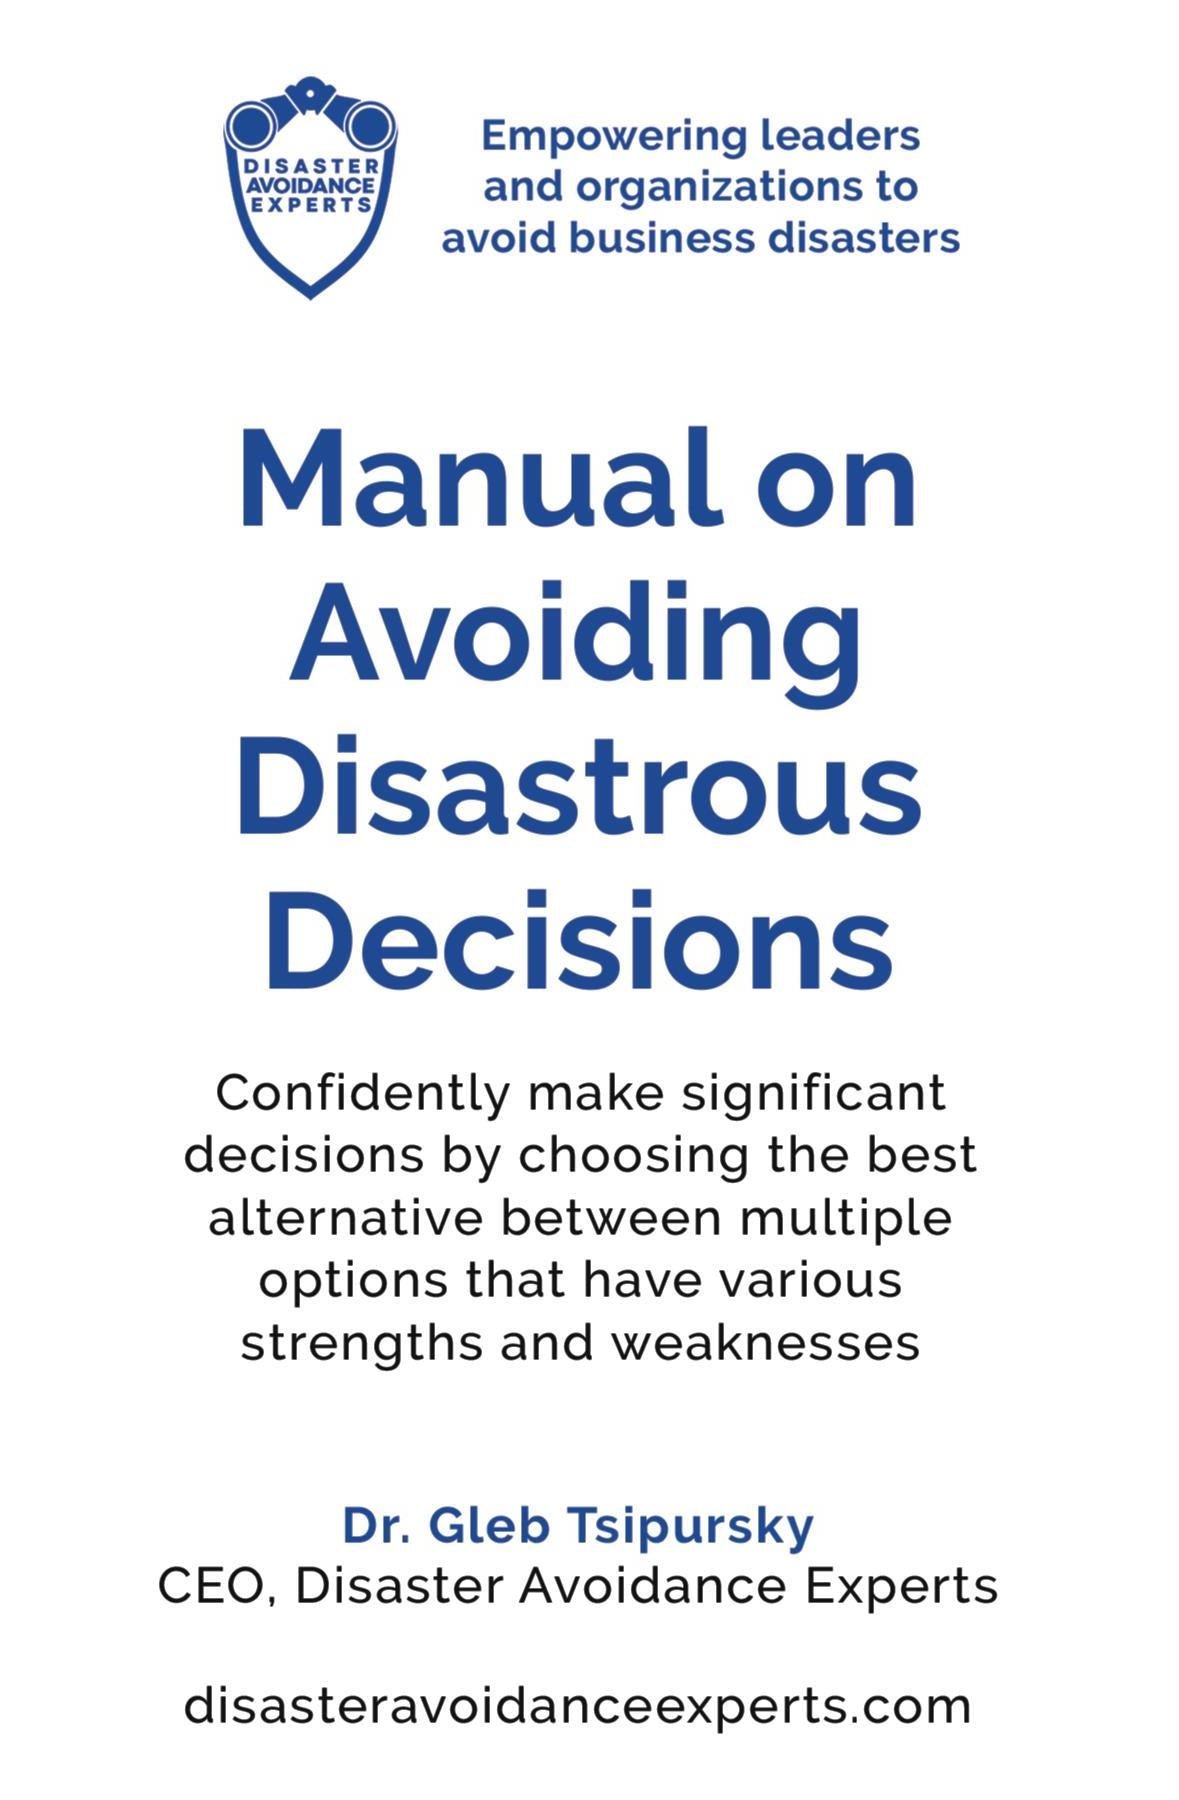 Manual on Avoiding Disastrous Decisions